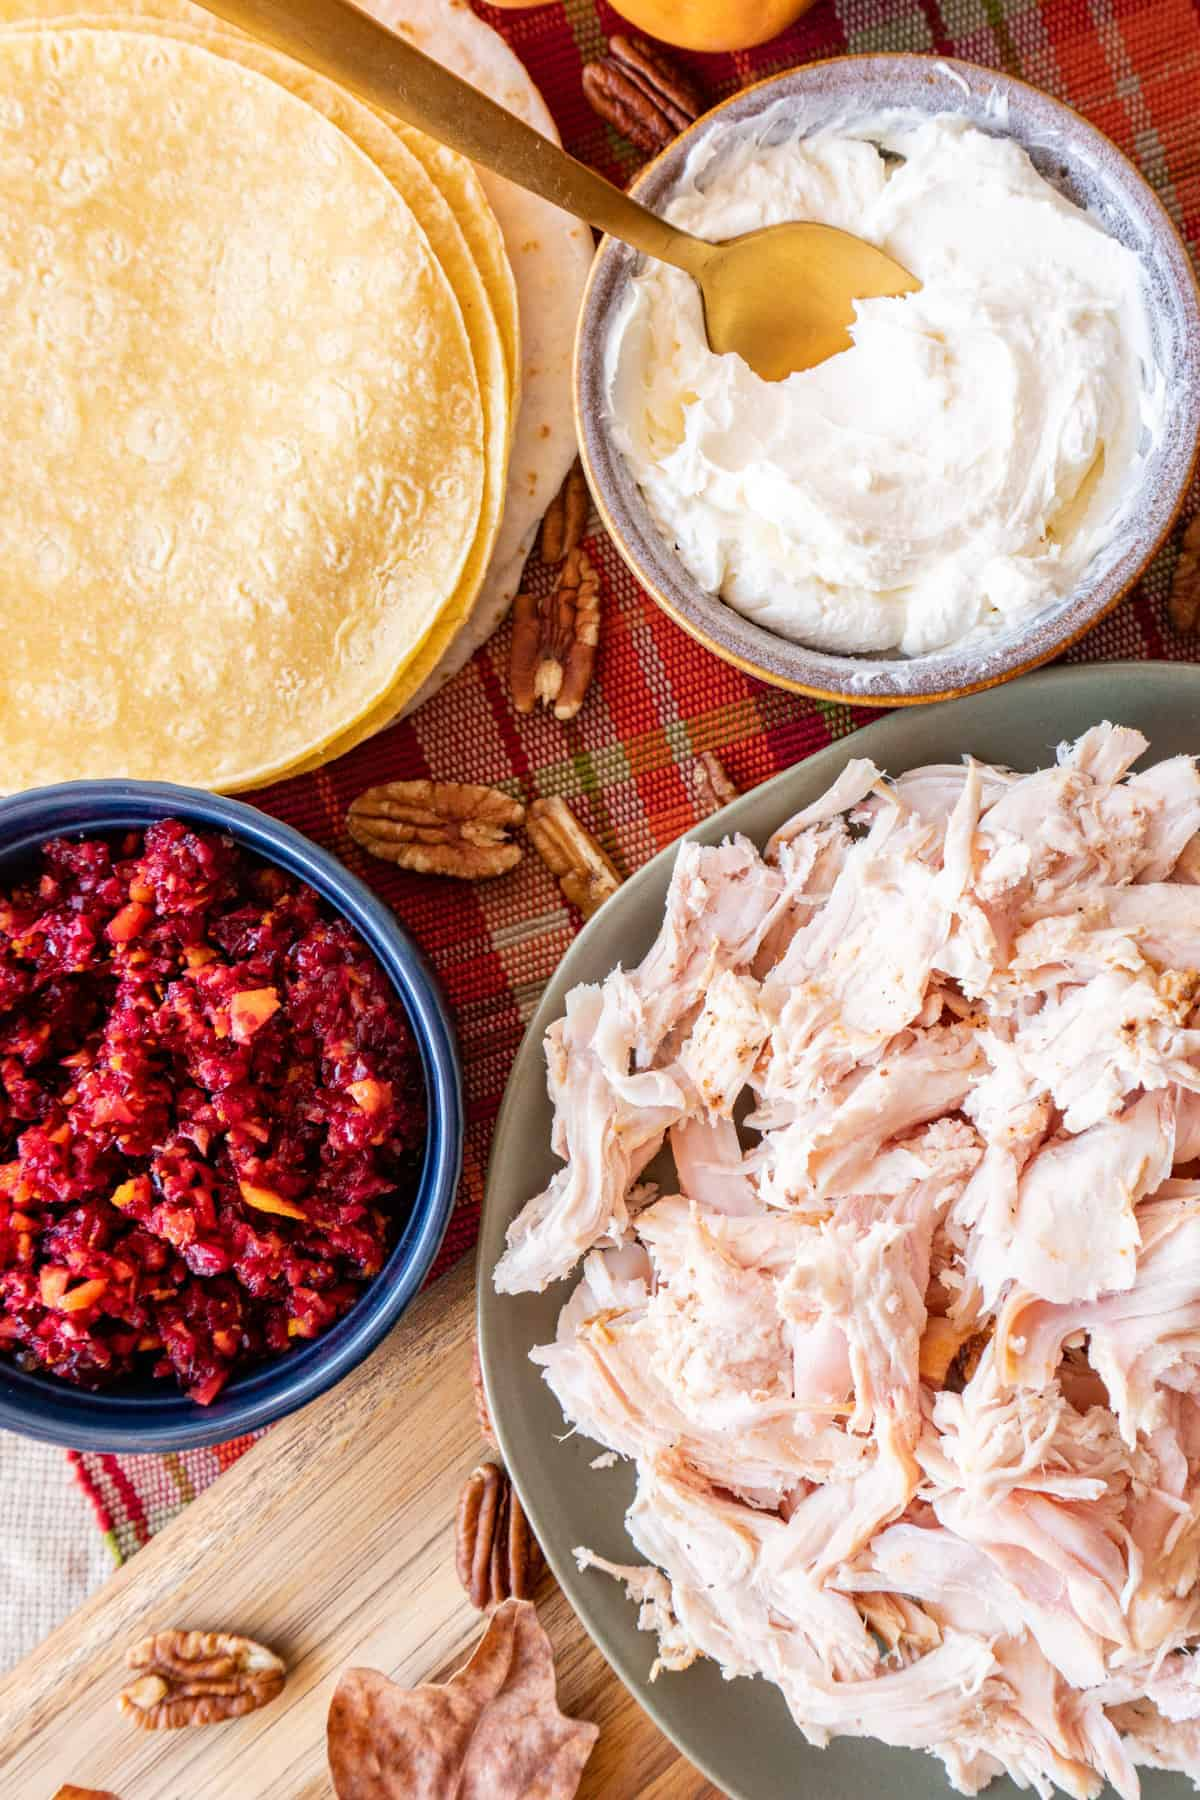 Turkey, cream cheese, cranberry relish, and tortillas